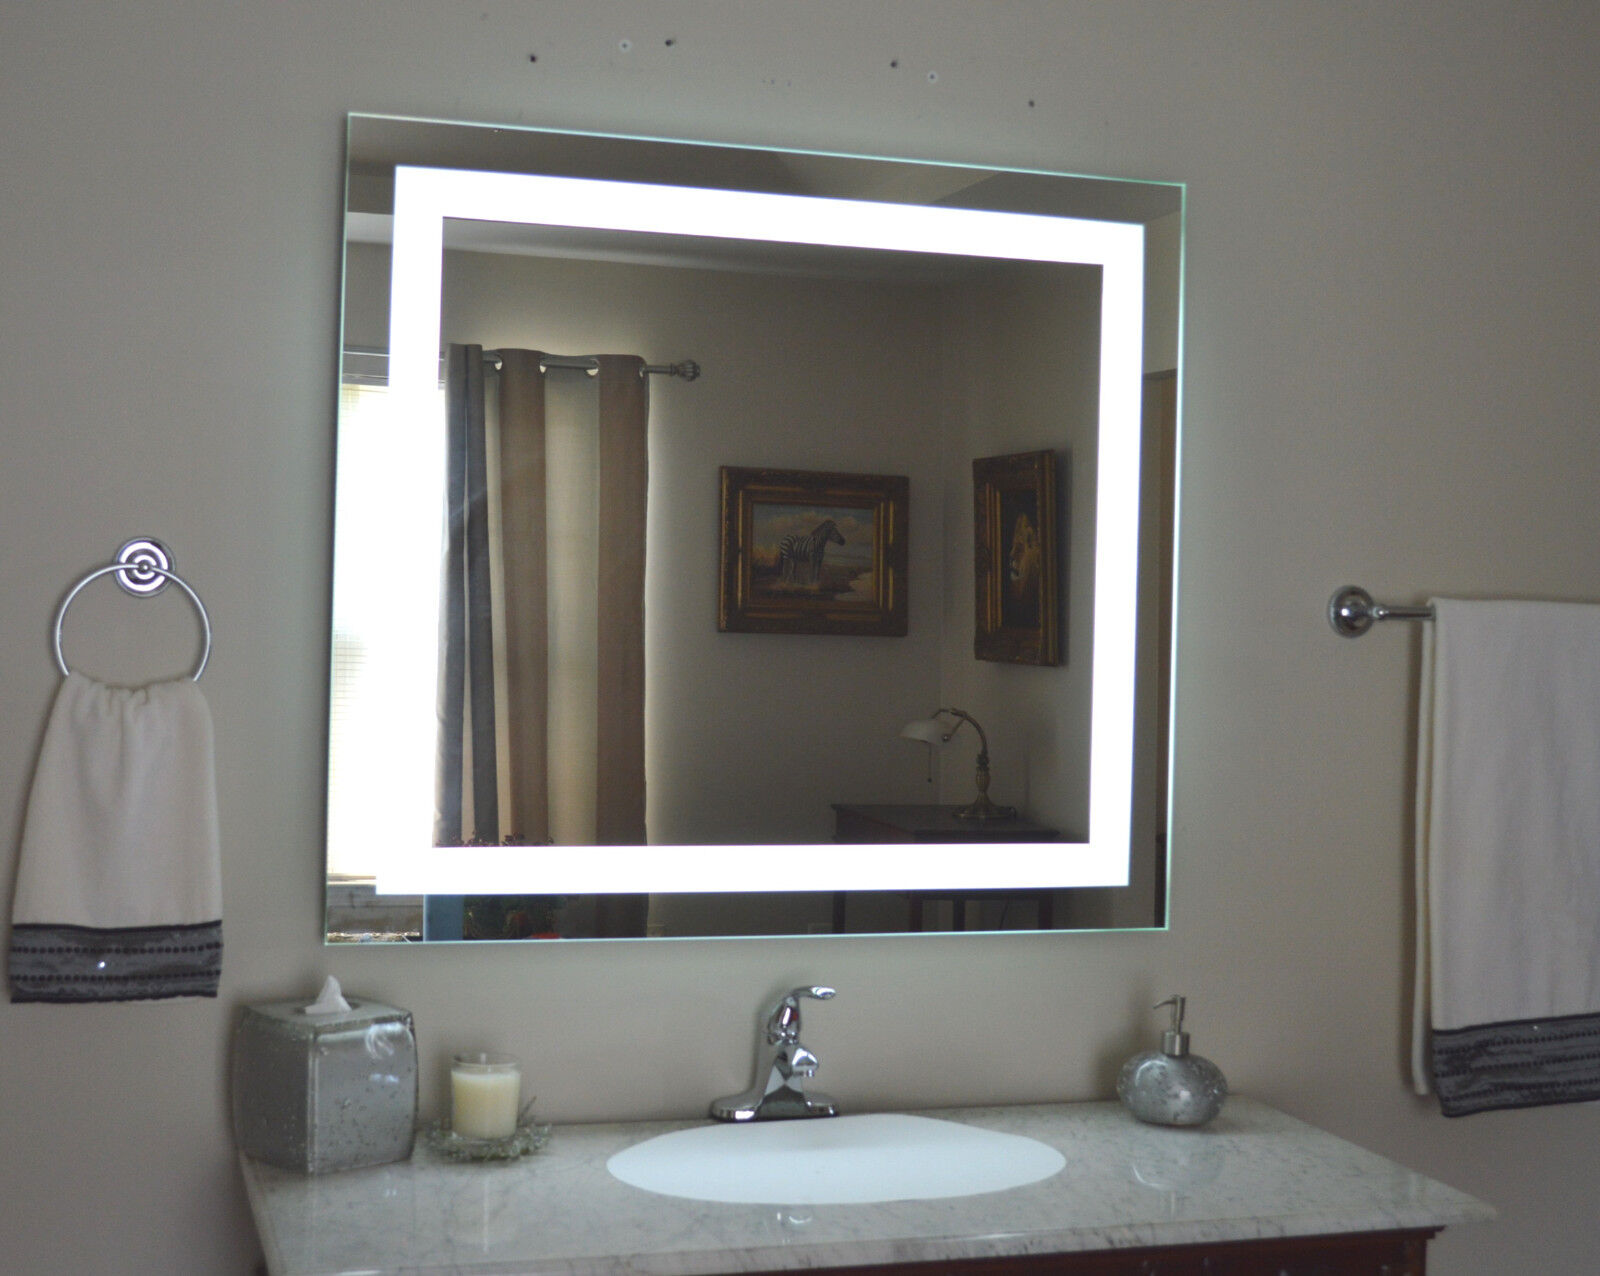 bathroom wall mounted mirrors lighted vanity mirror led lighted wall mounted mam84036 17143 | $(KGrHqFHJCEFINDlGMmkBSGlSI4nOQ~~60 57